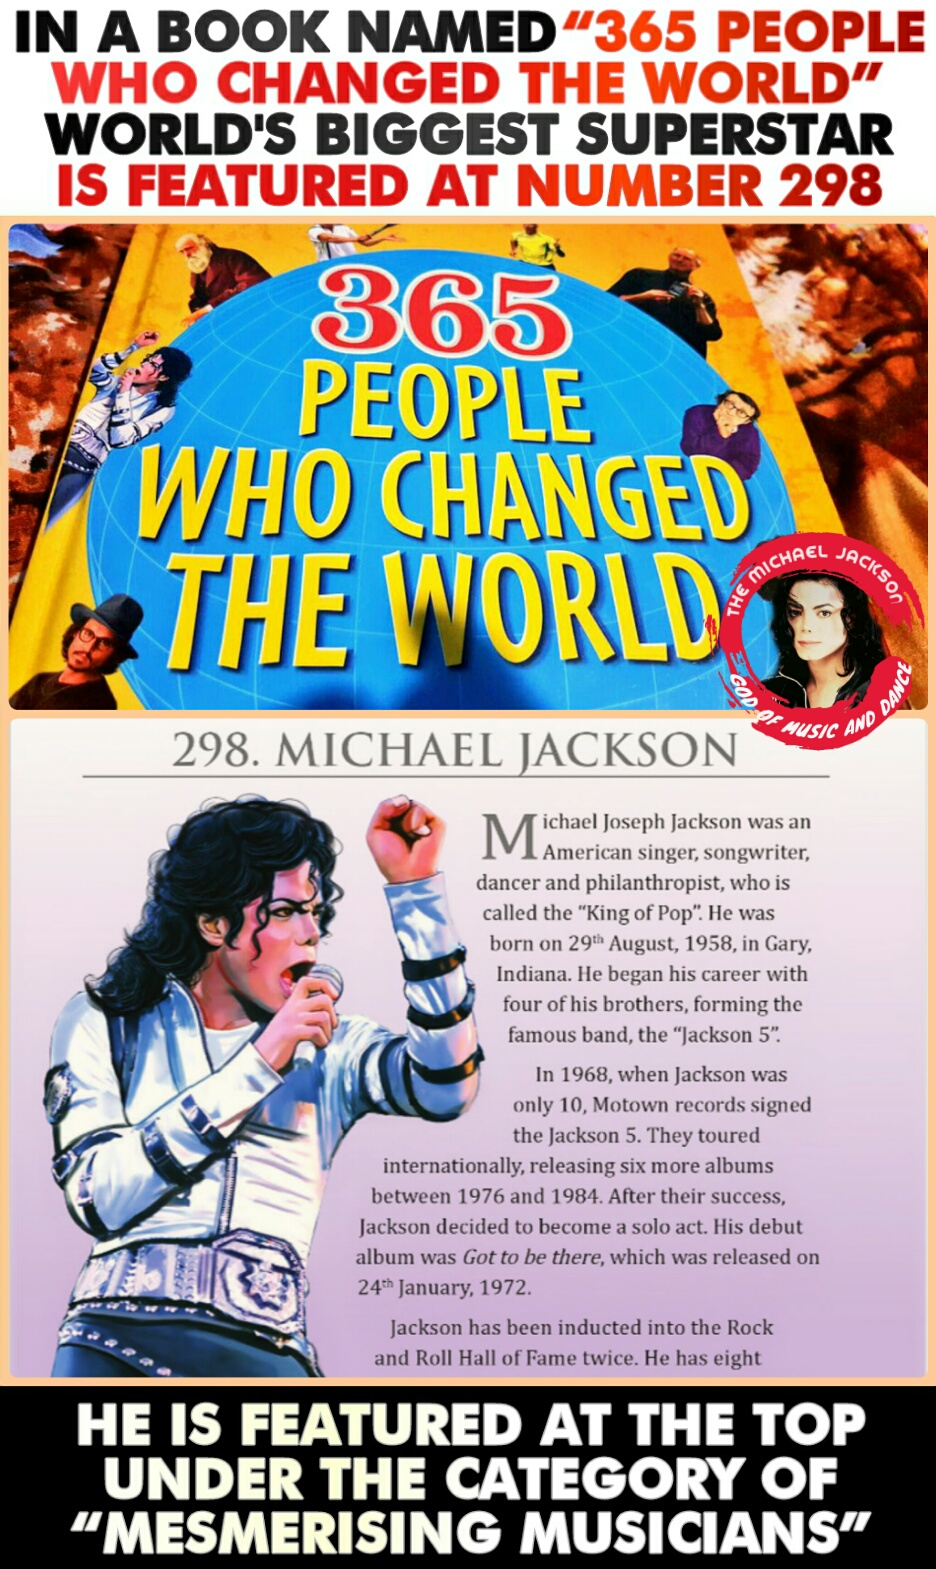 365 People Who Changed The World Featuring World's Biggest Superstar